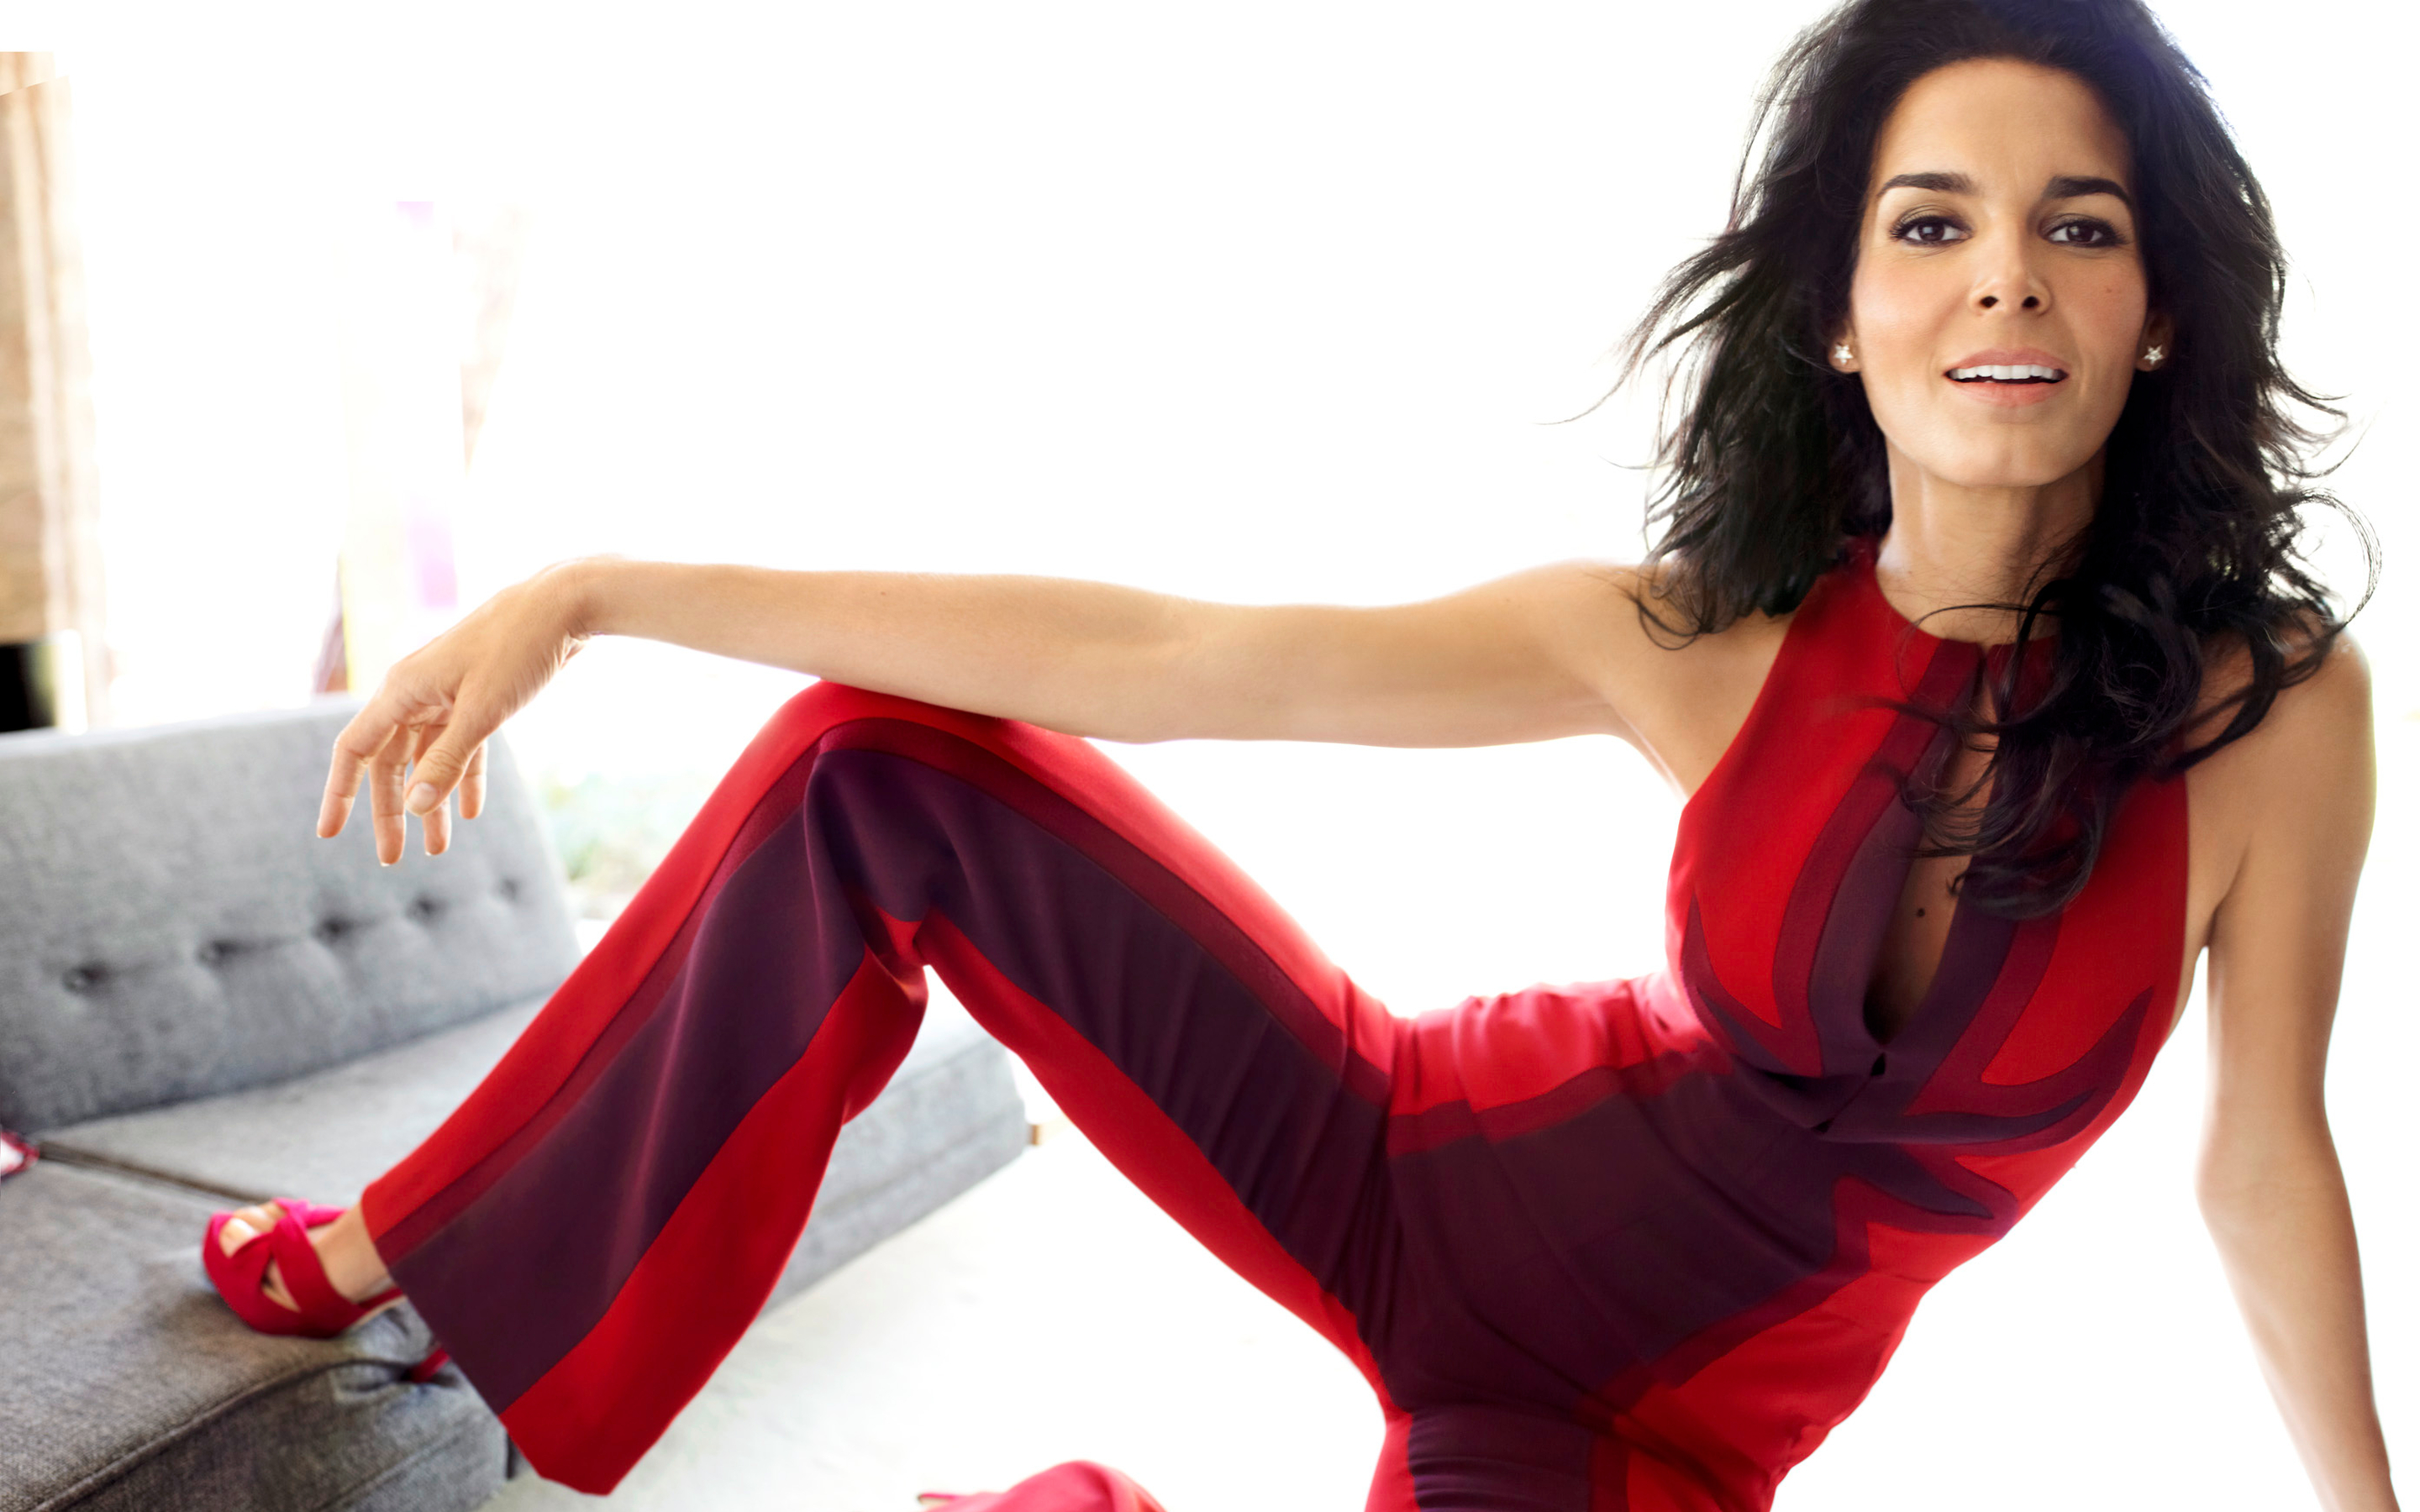 2880x1800 - Angie Harmon Wallpapers 2